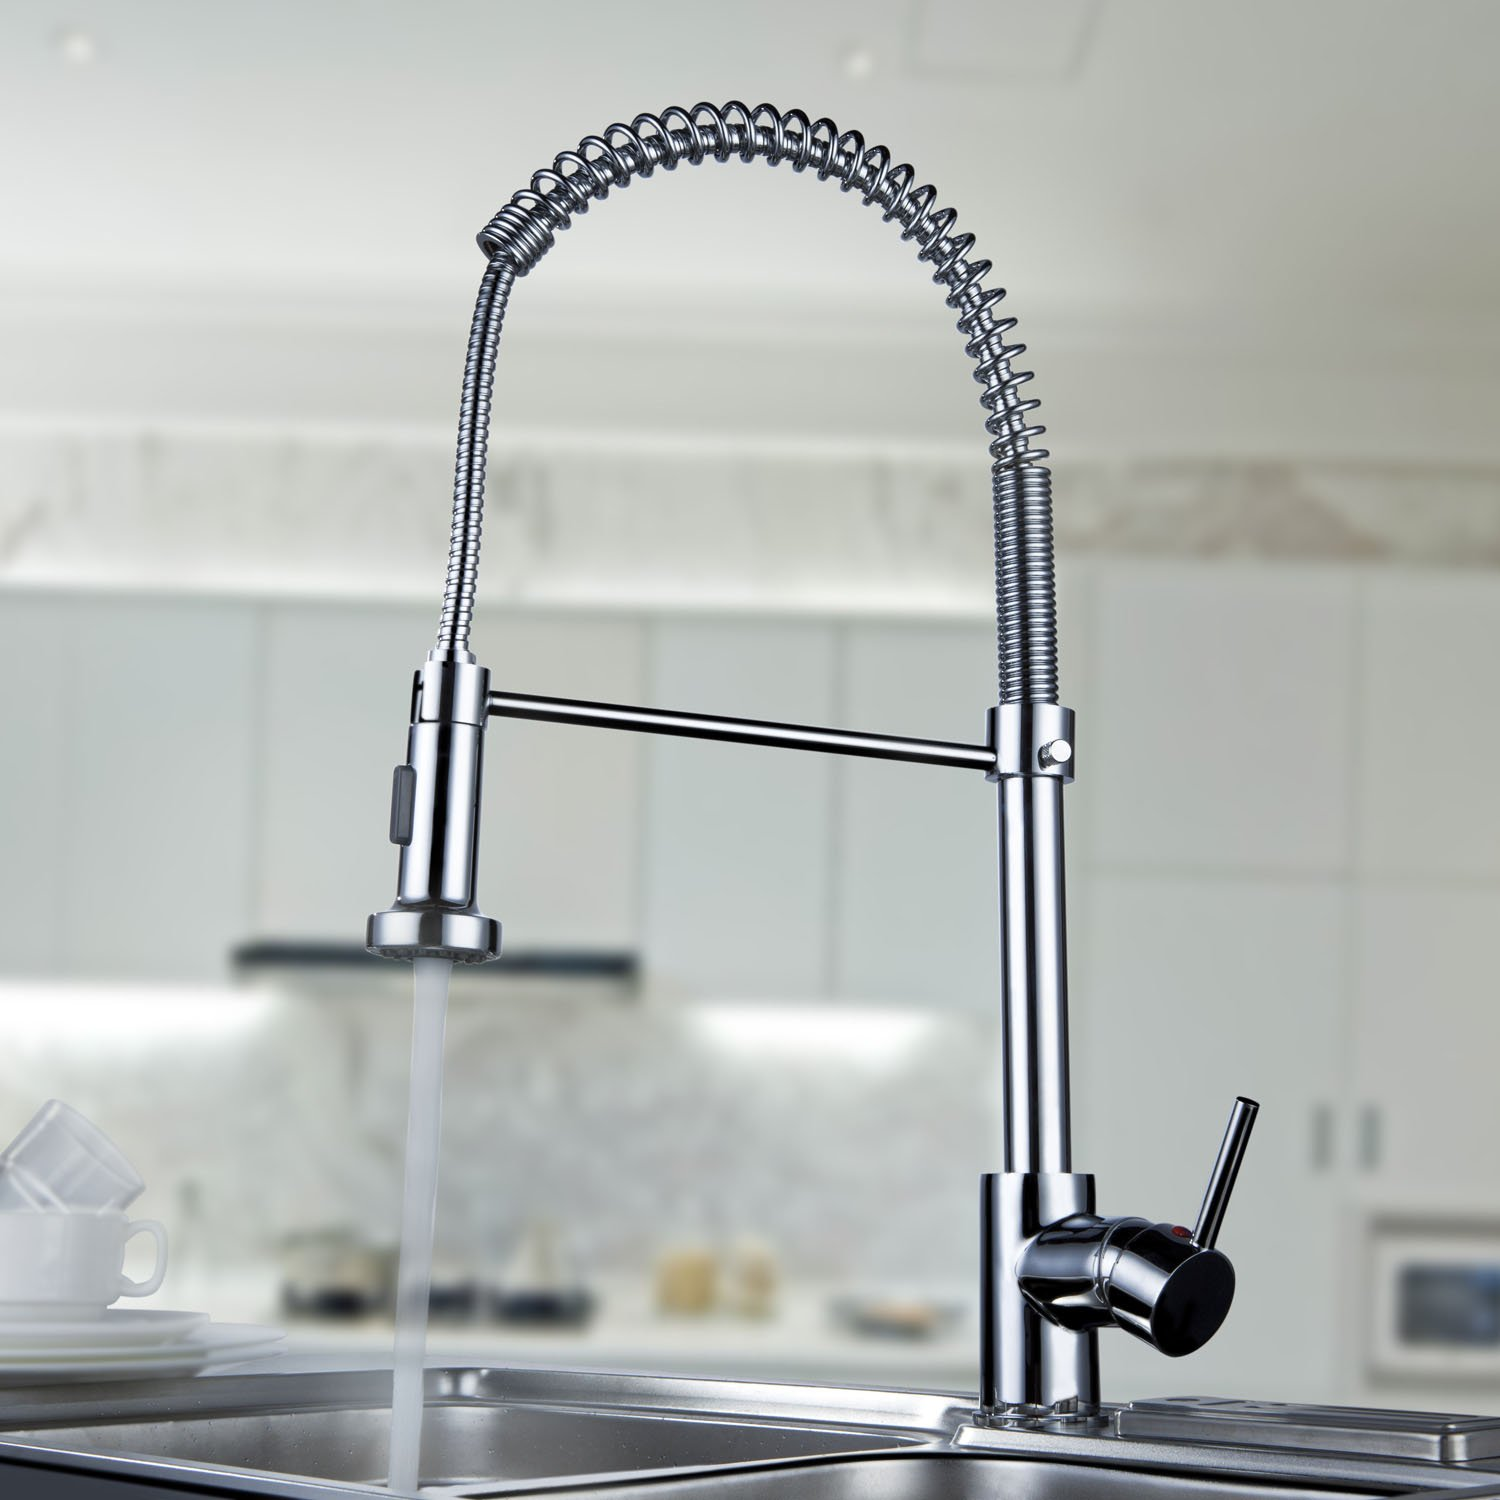 faucet out a july pull complete kpf single kraus lever faucets guide kitchen best coiled review top